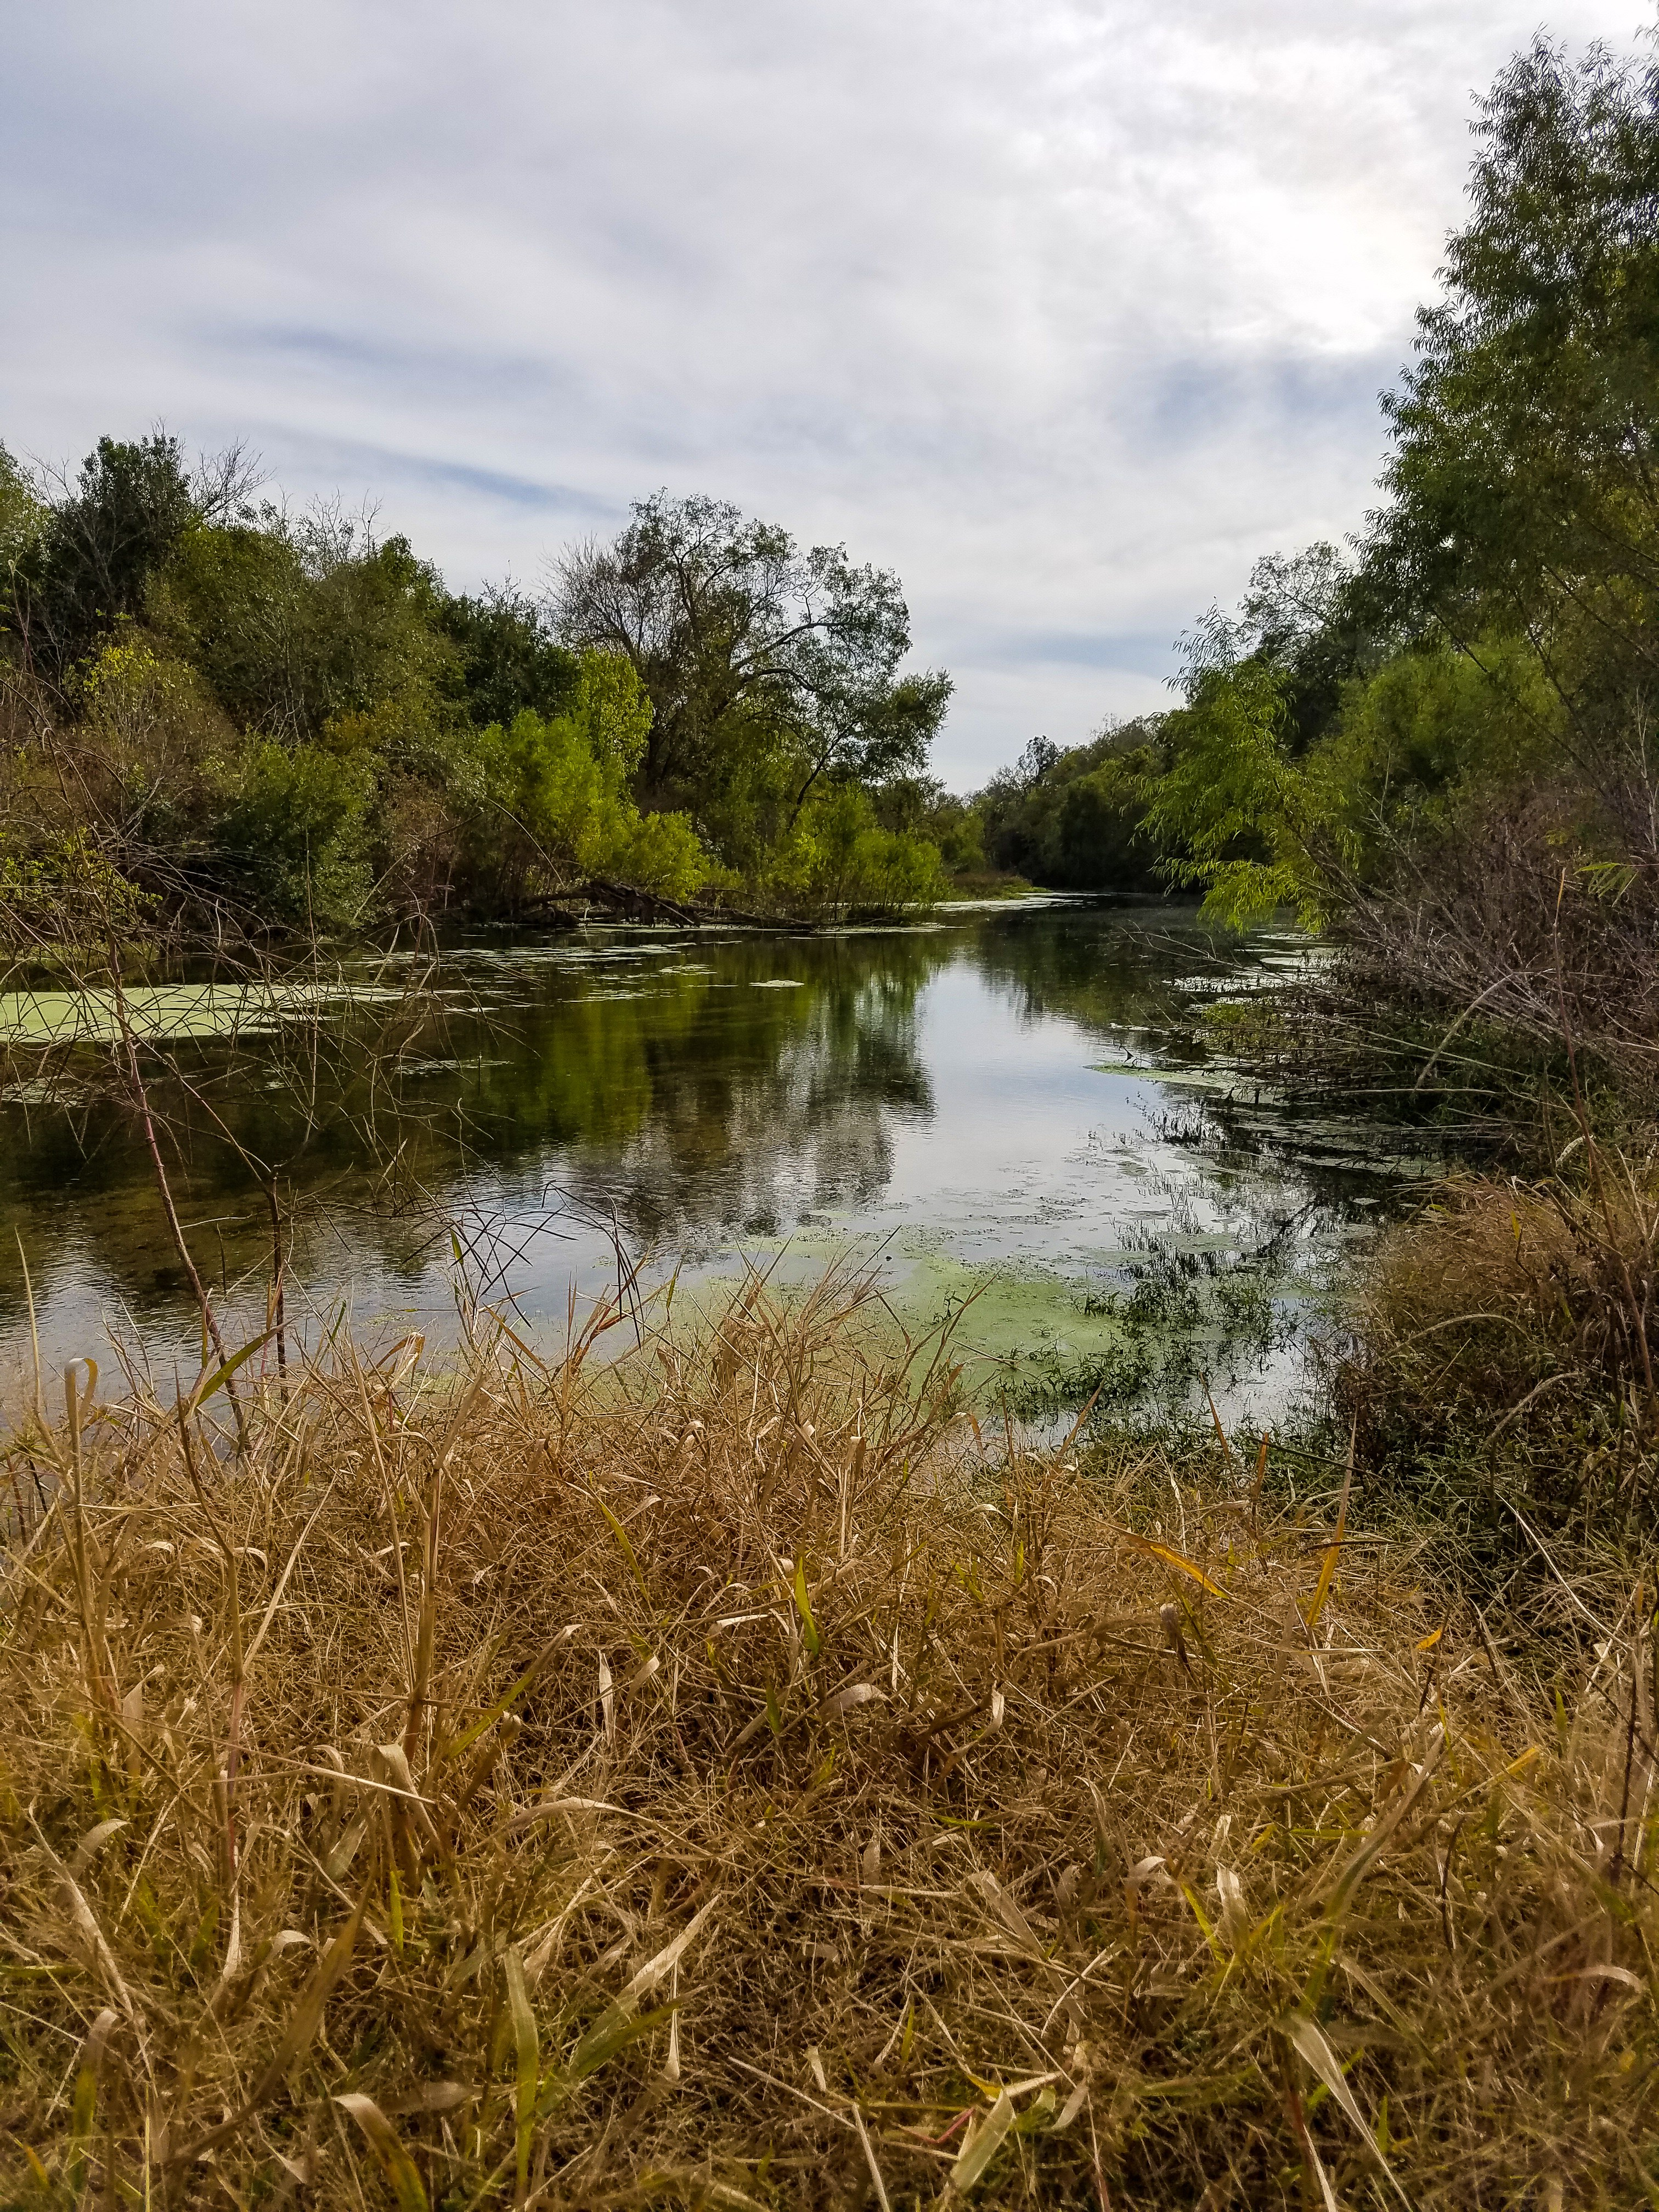 Crescent Bend Nature Park, Cibolo Watershed